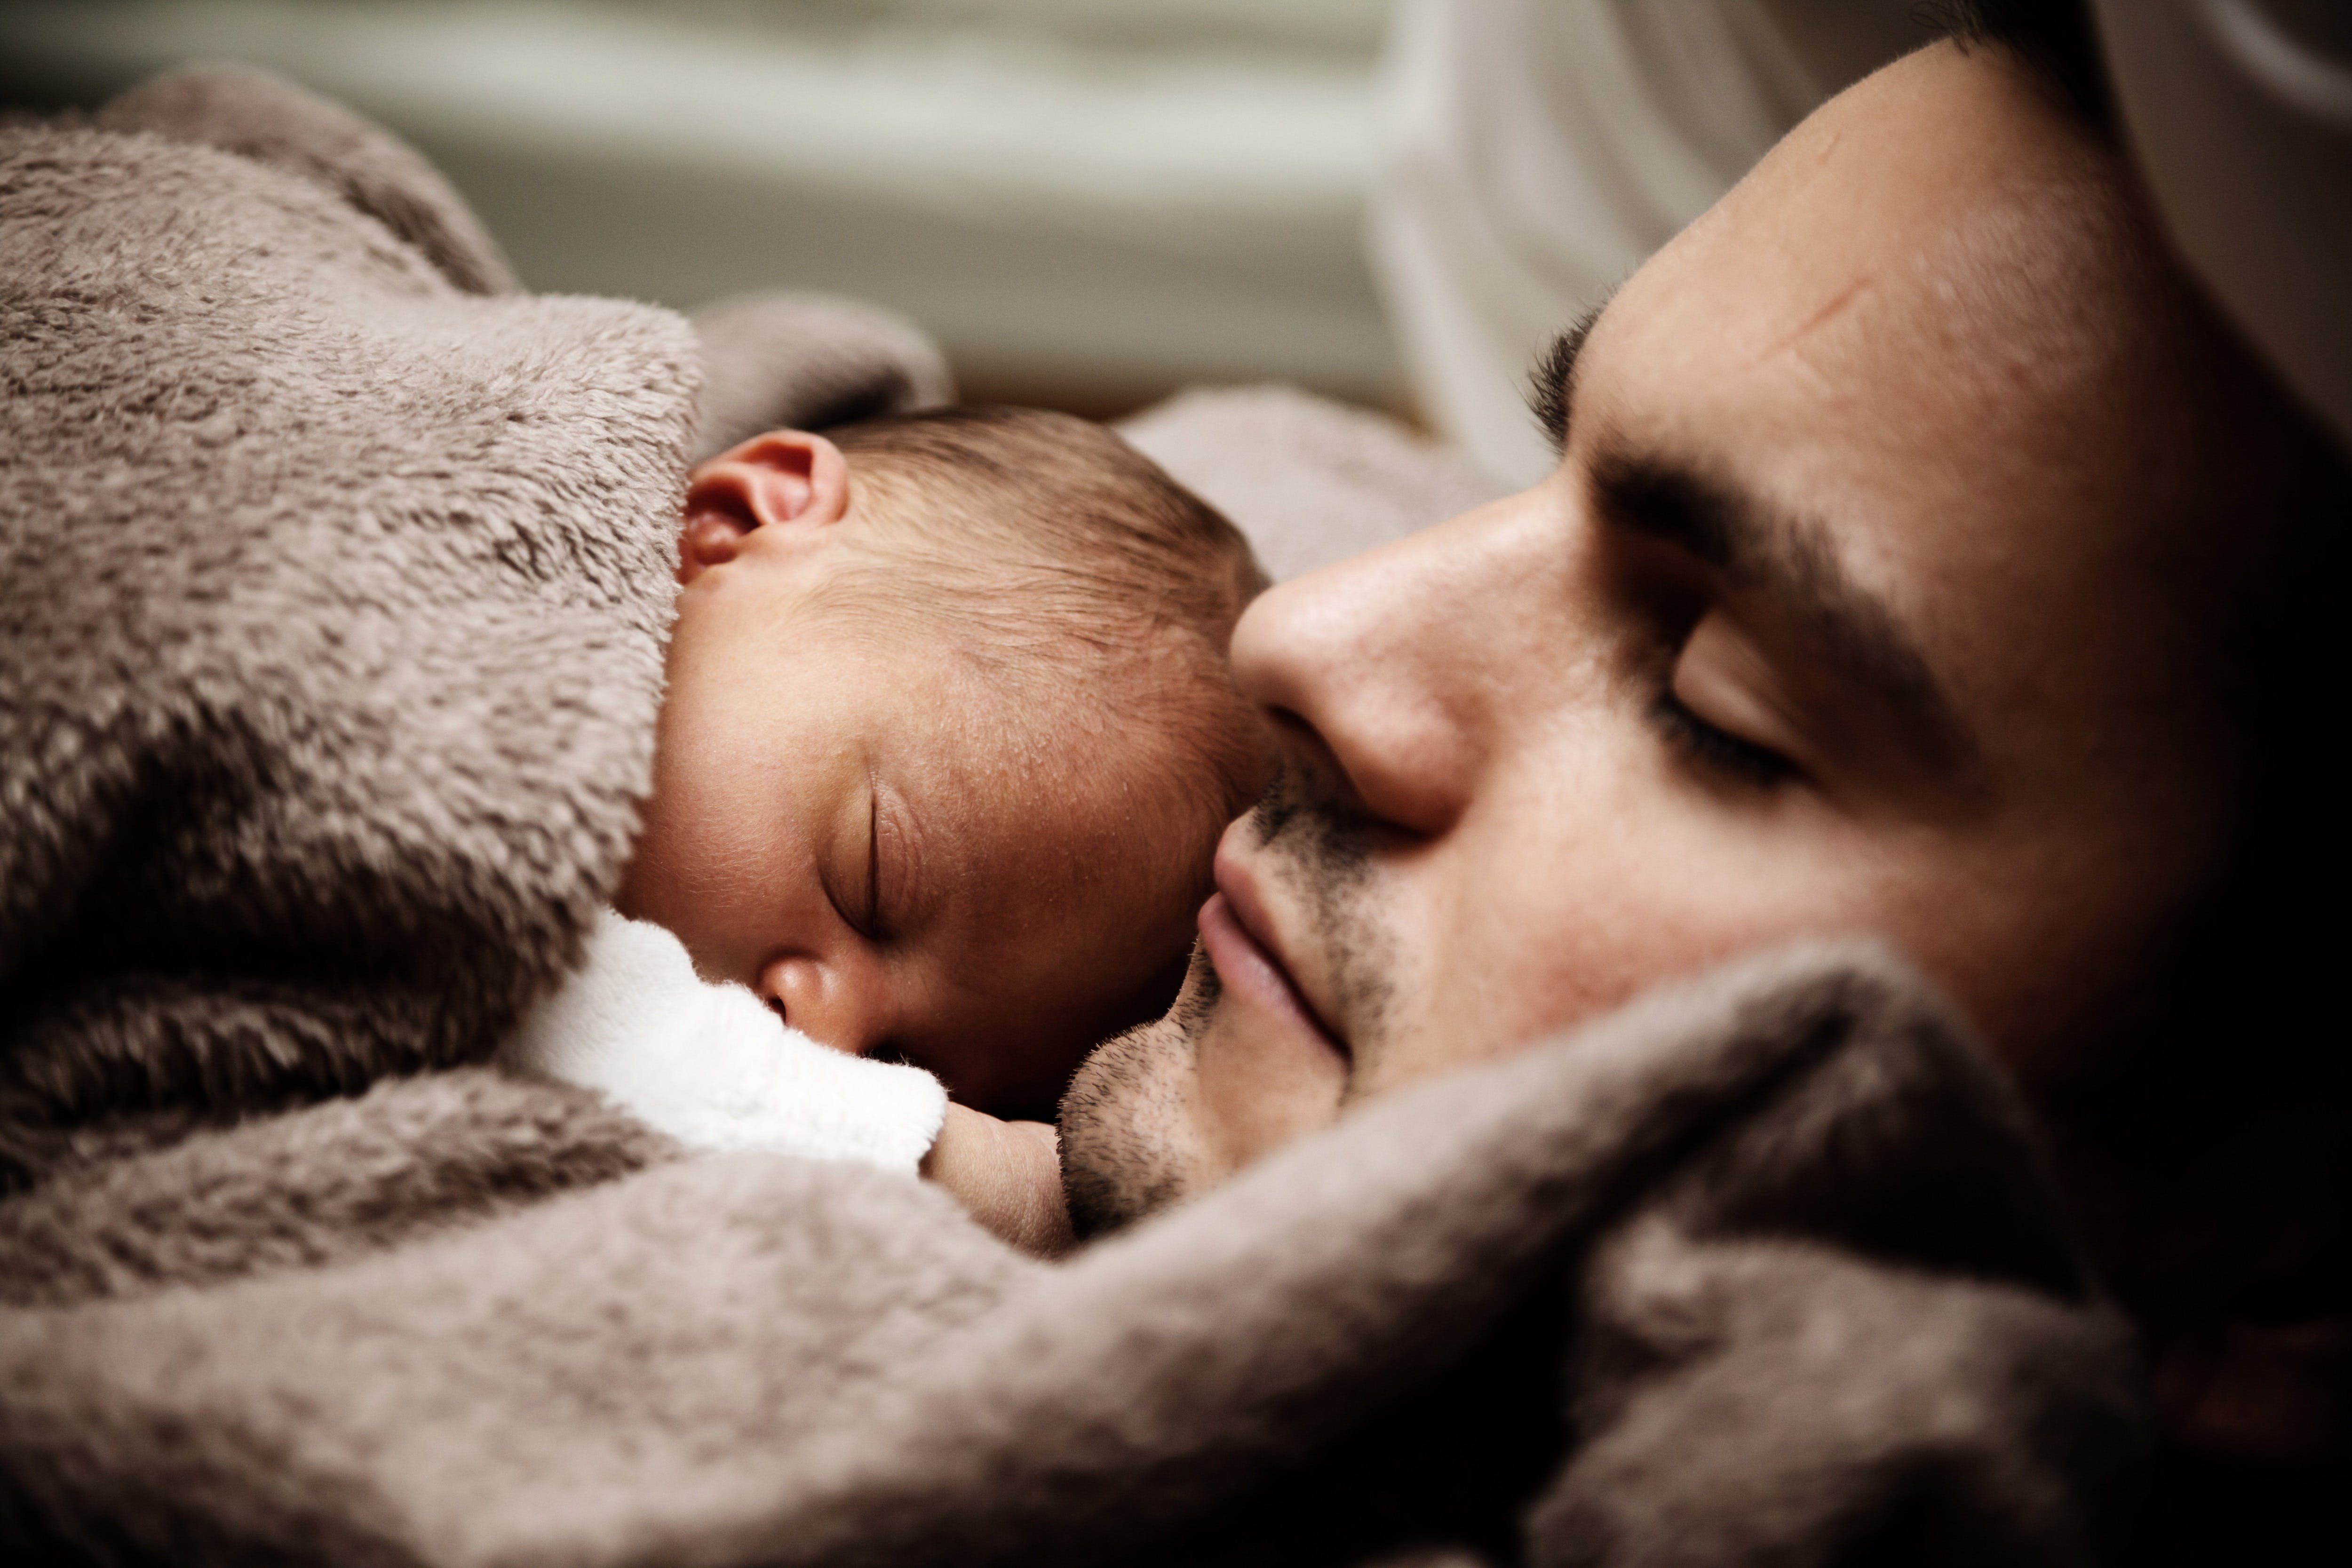 Sleeping Man and Baby in Close-up Photography